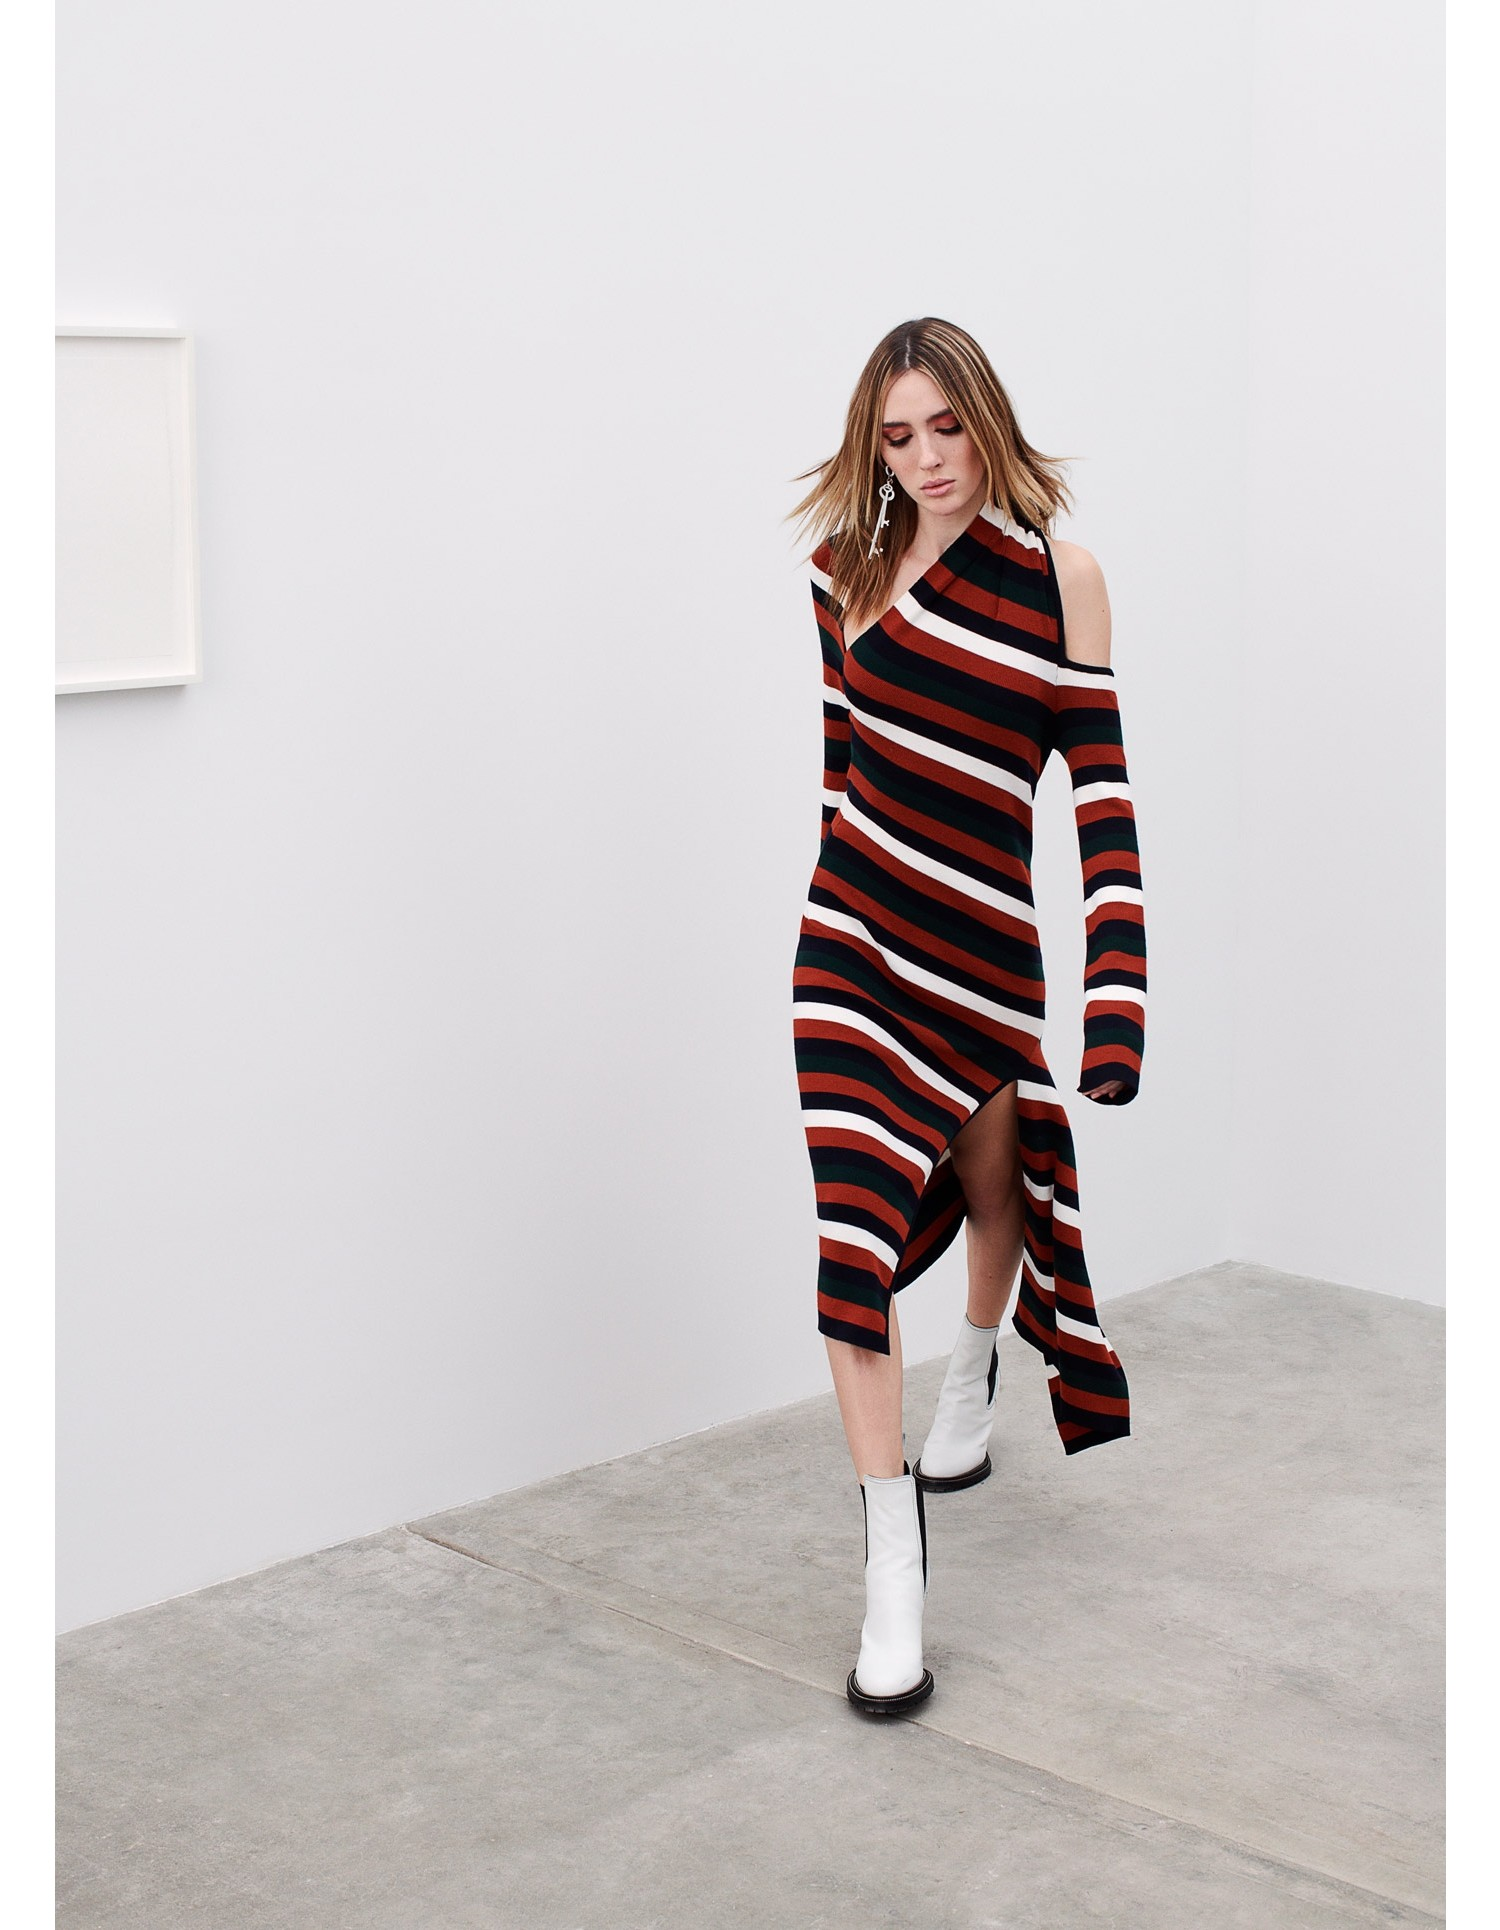 MONSE Stripe Slice Dress Model View